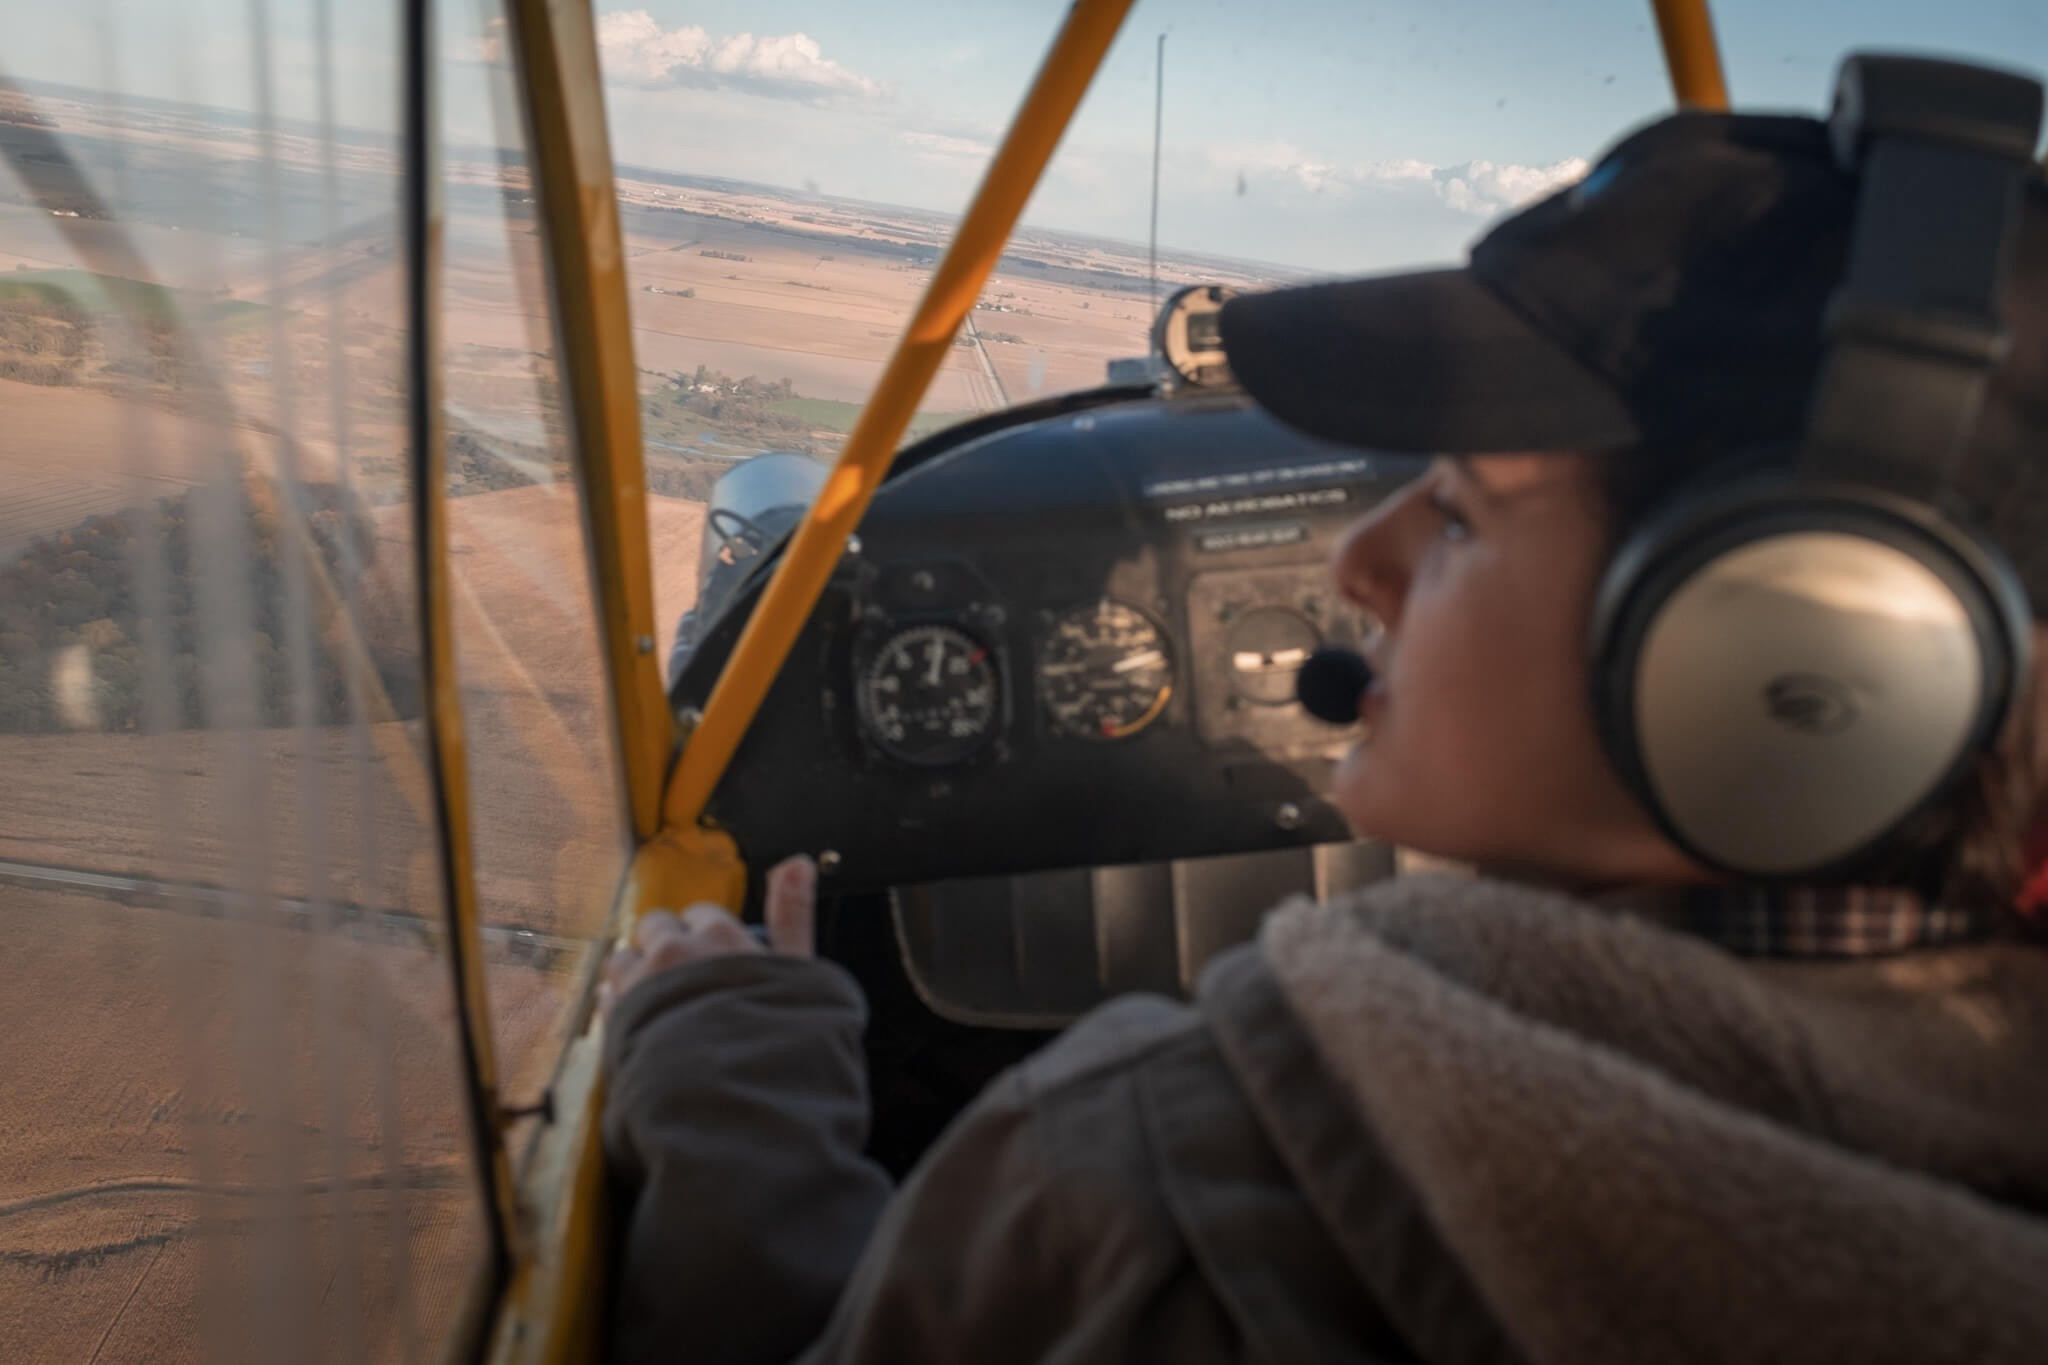 Piper J-3 Cub (N6673H) cockpit with CFI Lana Tollas scanning for traffic on base leg while on downwind leg of traffic pattern